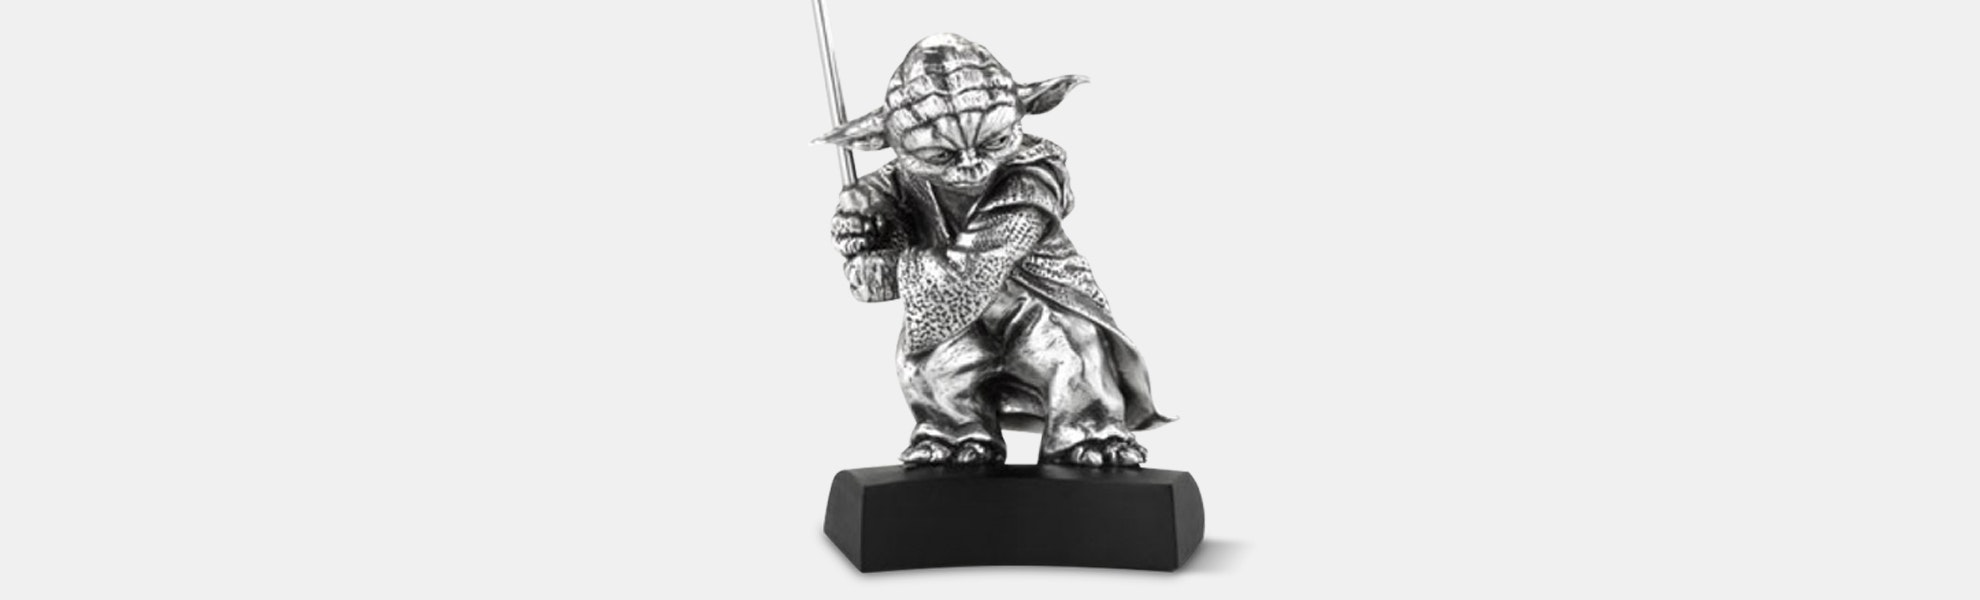 Royal Selangor Yoda Pewter Statue | Price & Reviews | Massdrop